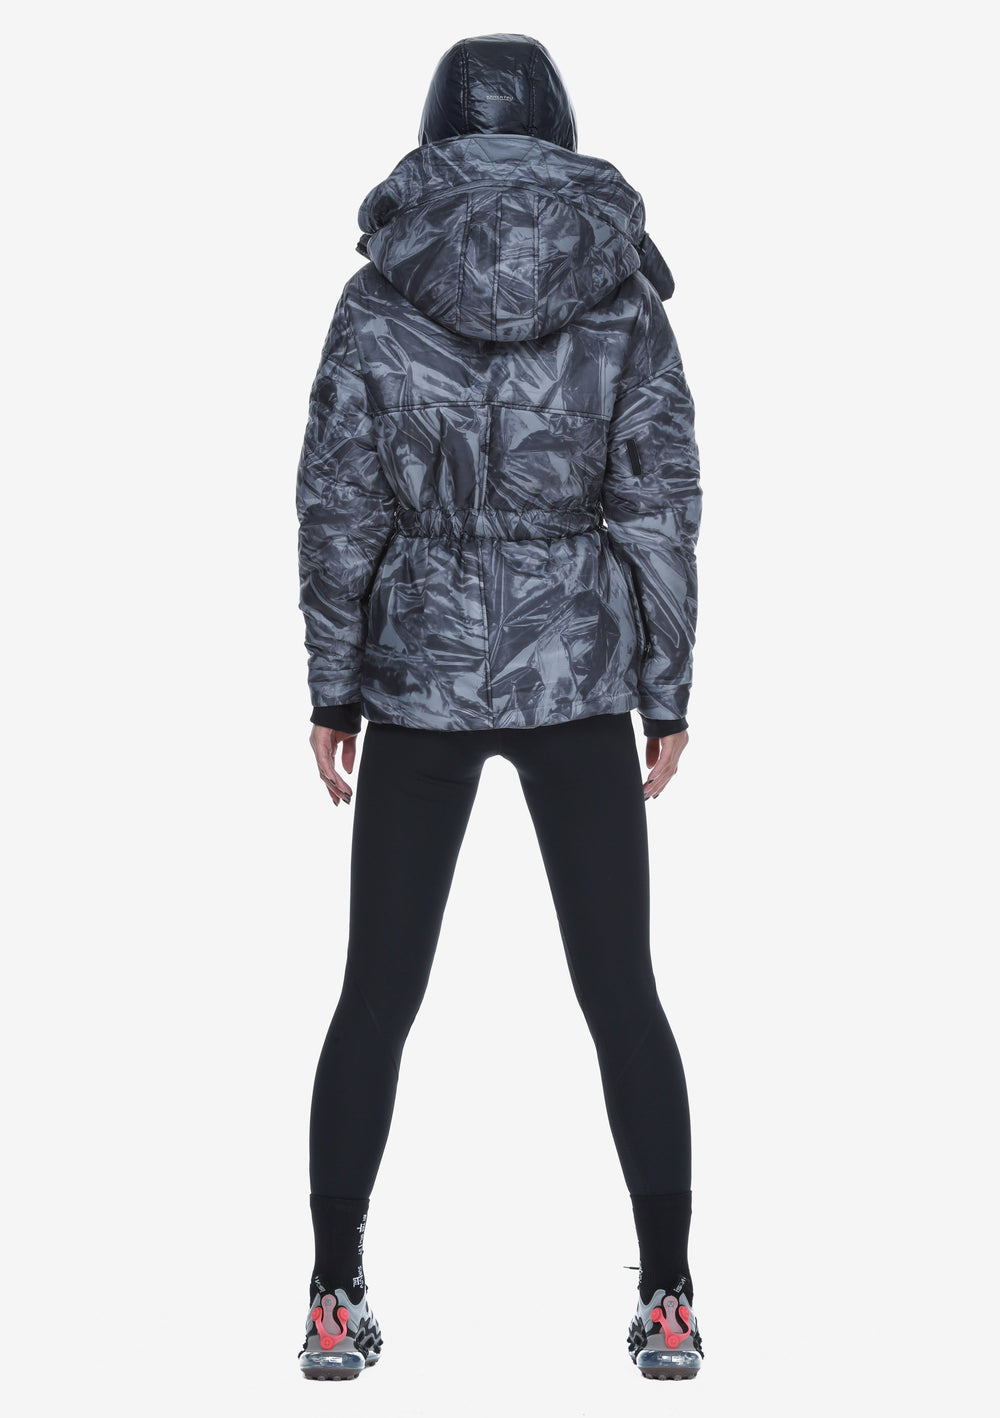 Removable Hood Padded Jacket Qw260-23 LARSEN